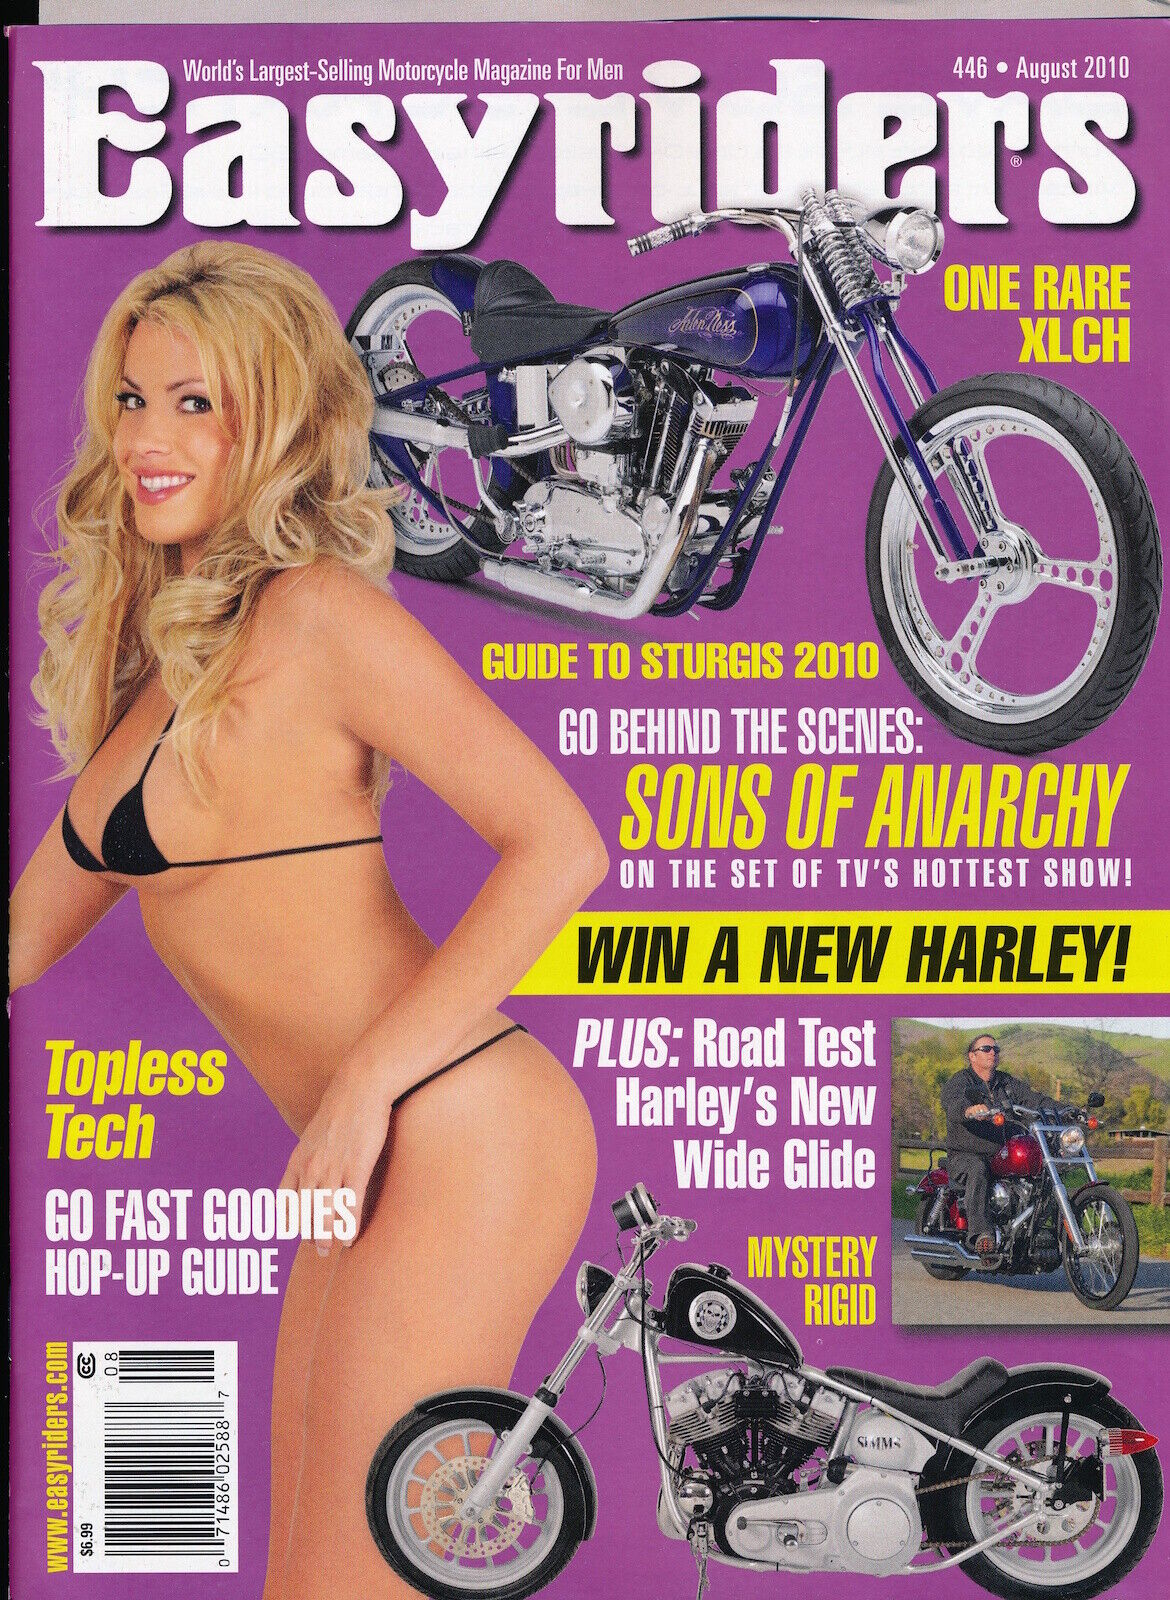 EASYRIDERS August 2010 Vintage Magazine PINUP Motorcycles SONS Anarchy 127009 - $2.00